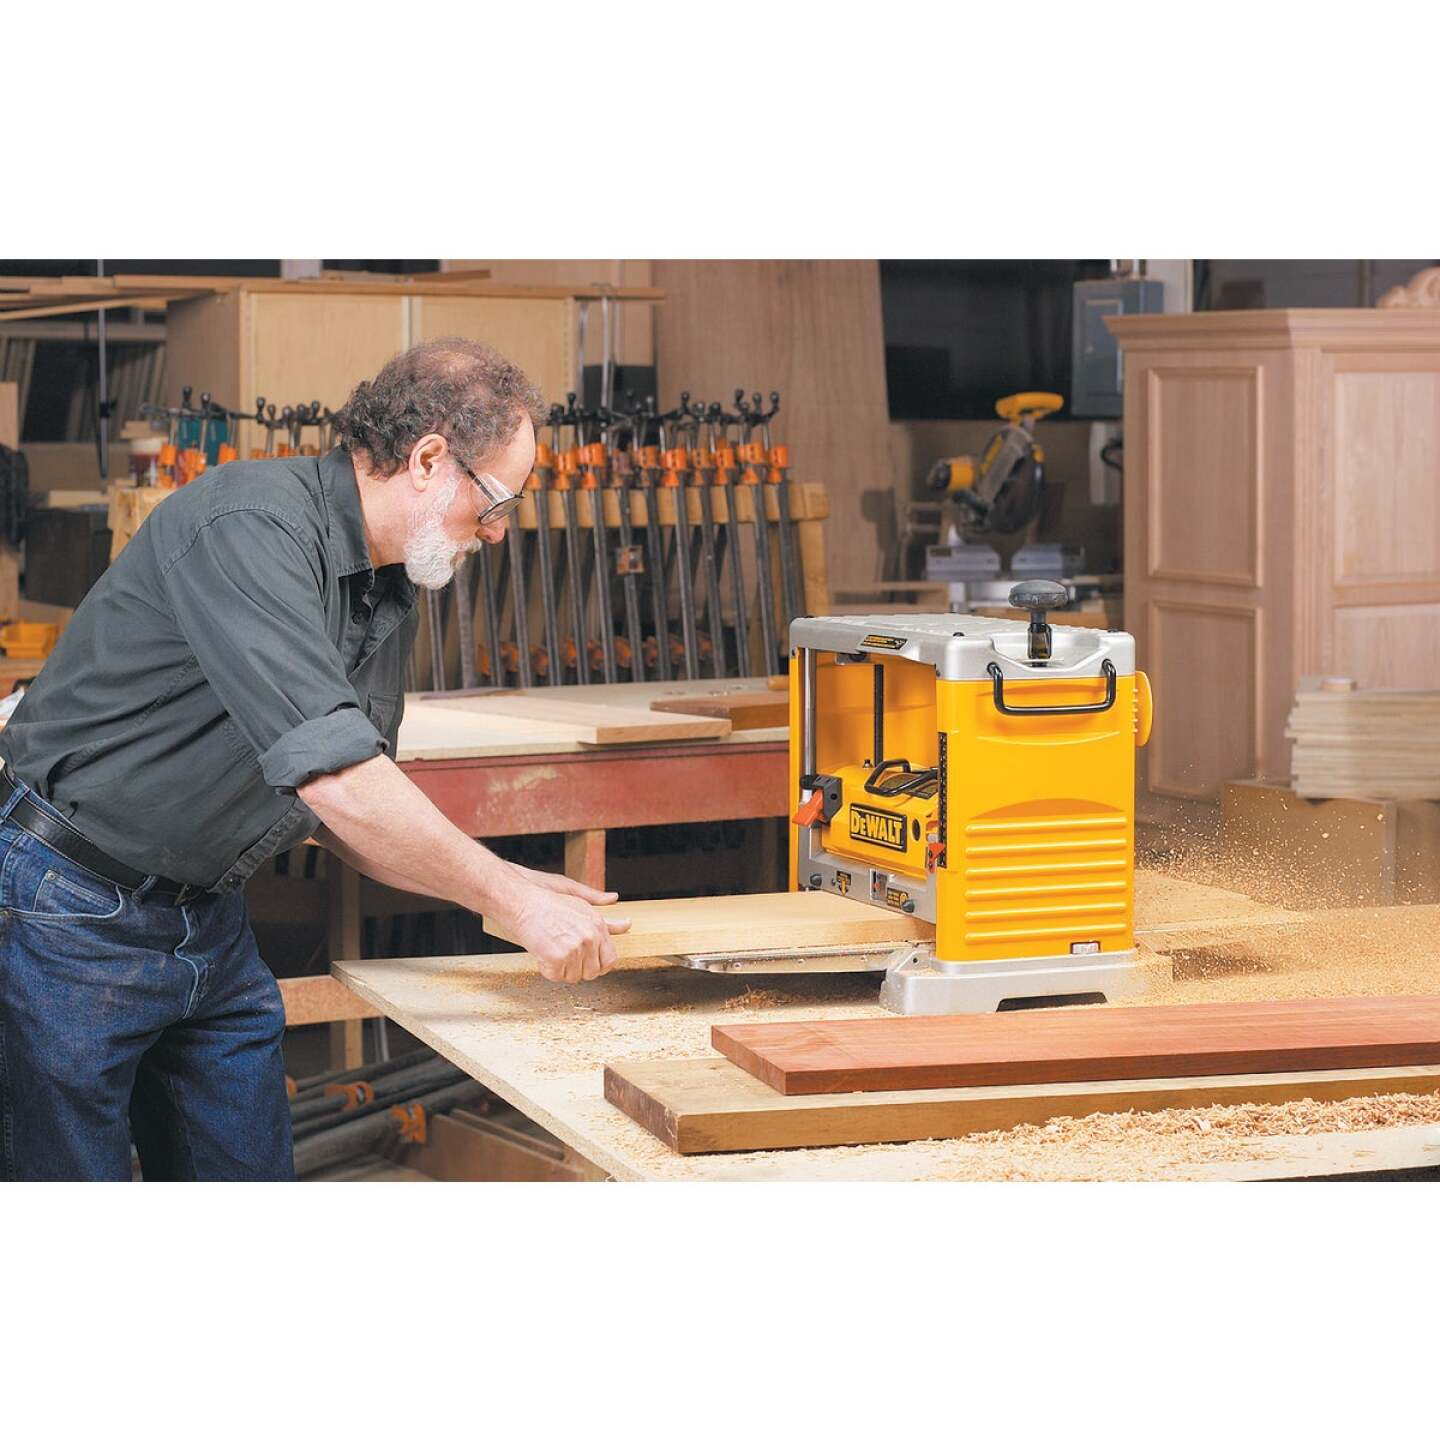 DeWalt 12-1/2 In. Portable Planer Image 3